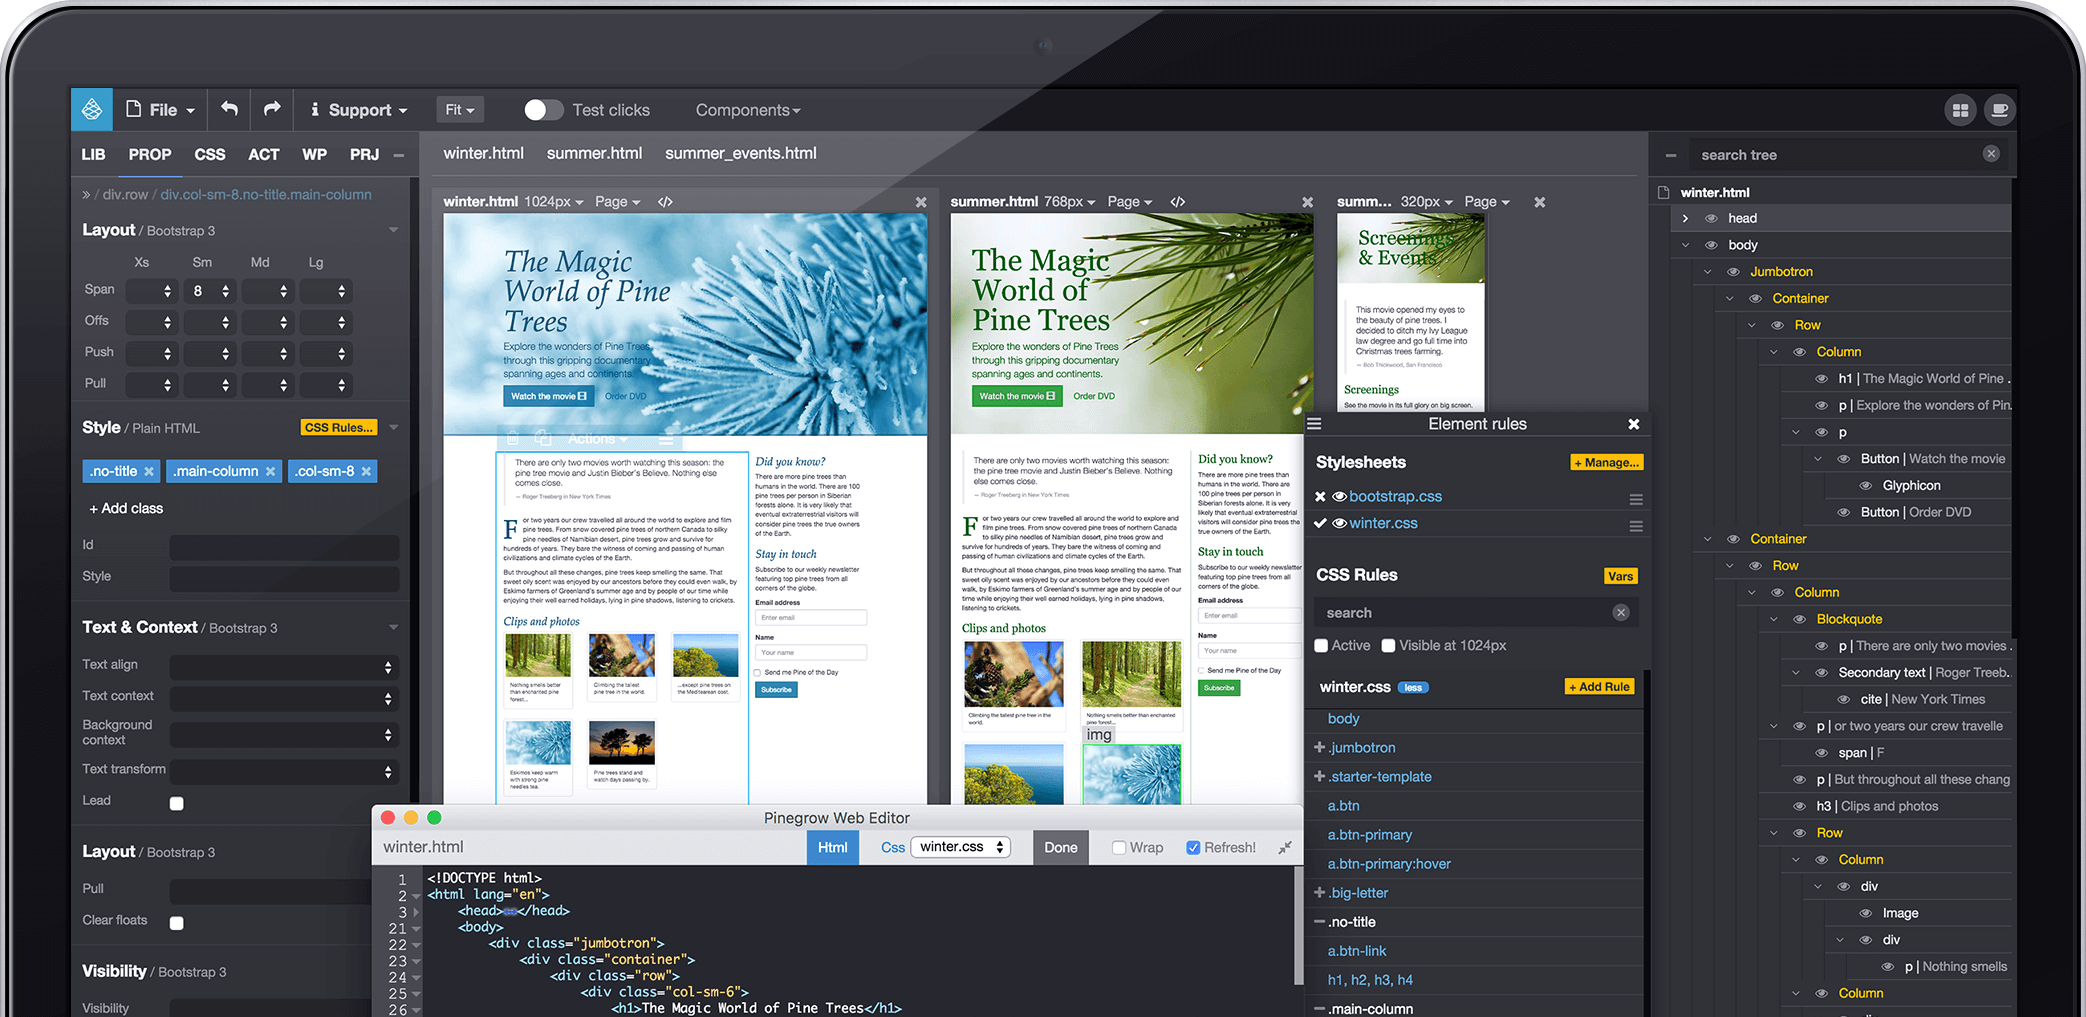 Pinegrow Web Editor Website Builder For Professionals